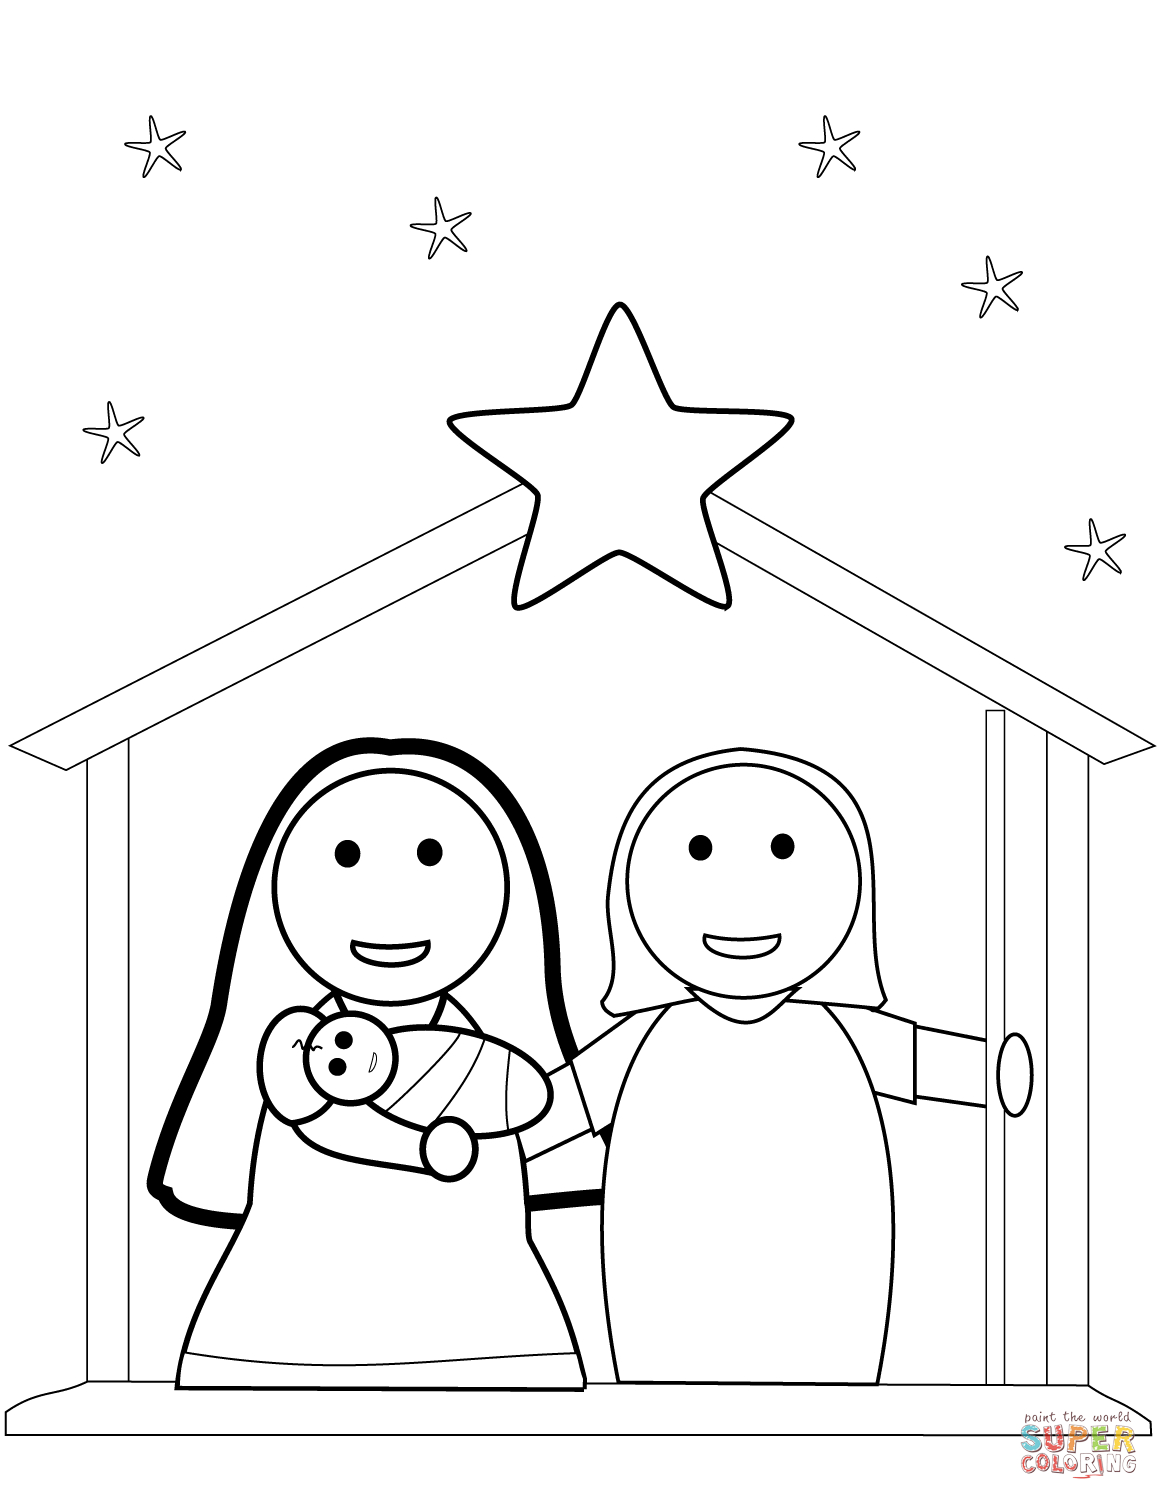 Christmas Nativity Scene Coloring Page | Free Printable Coloring Pages - Free Printable Pictures Of Nativity Scenes